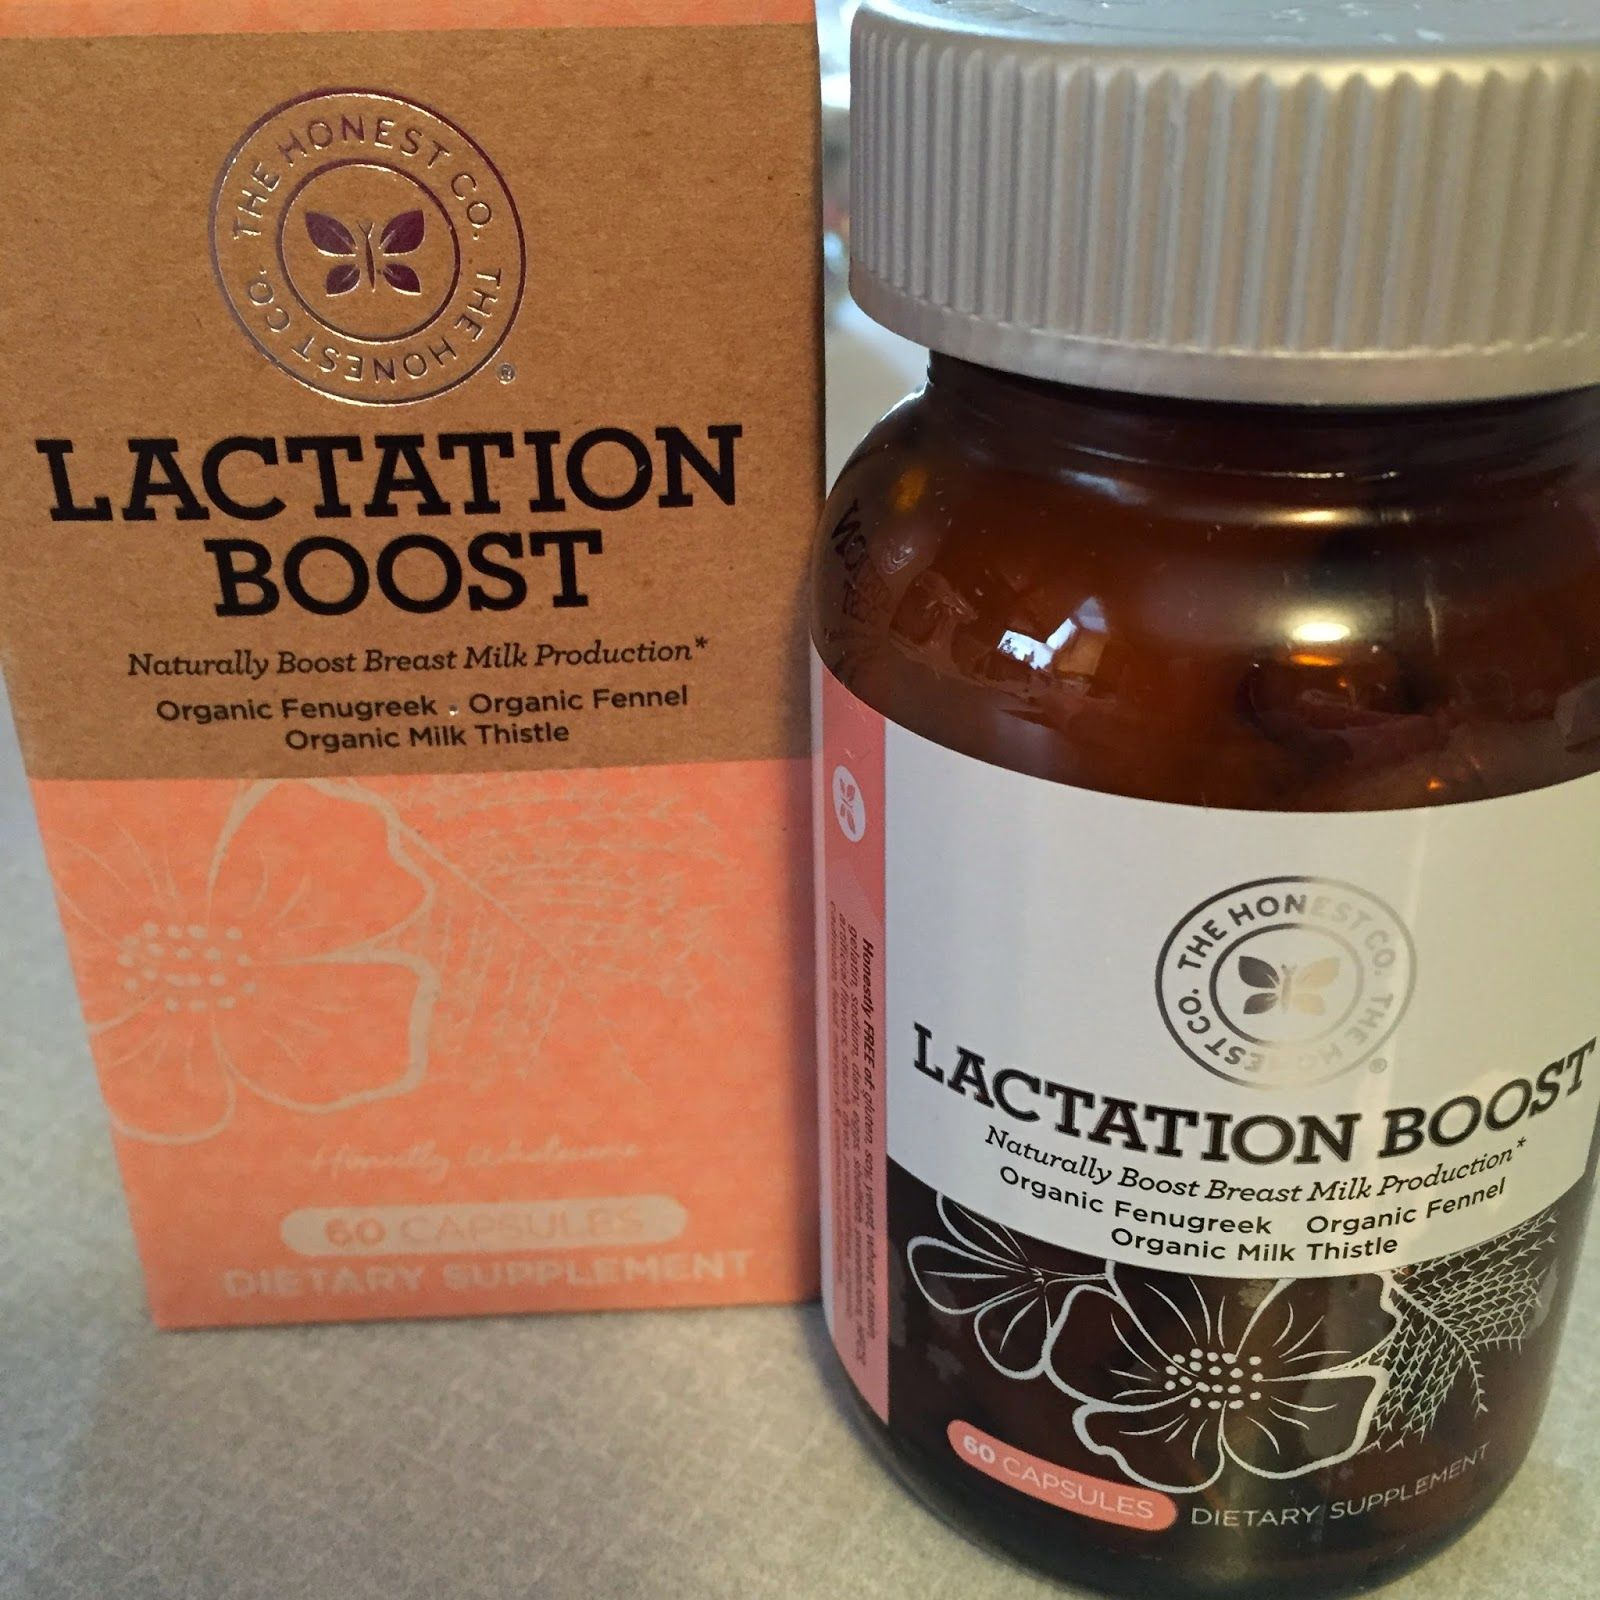 Lactation Boost - This Amazing Supplement Really Helped Me -1660